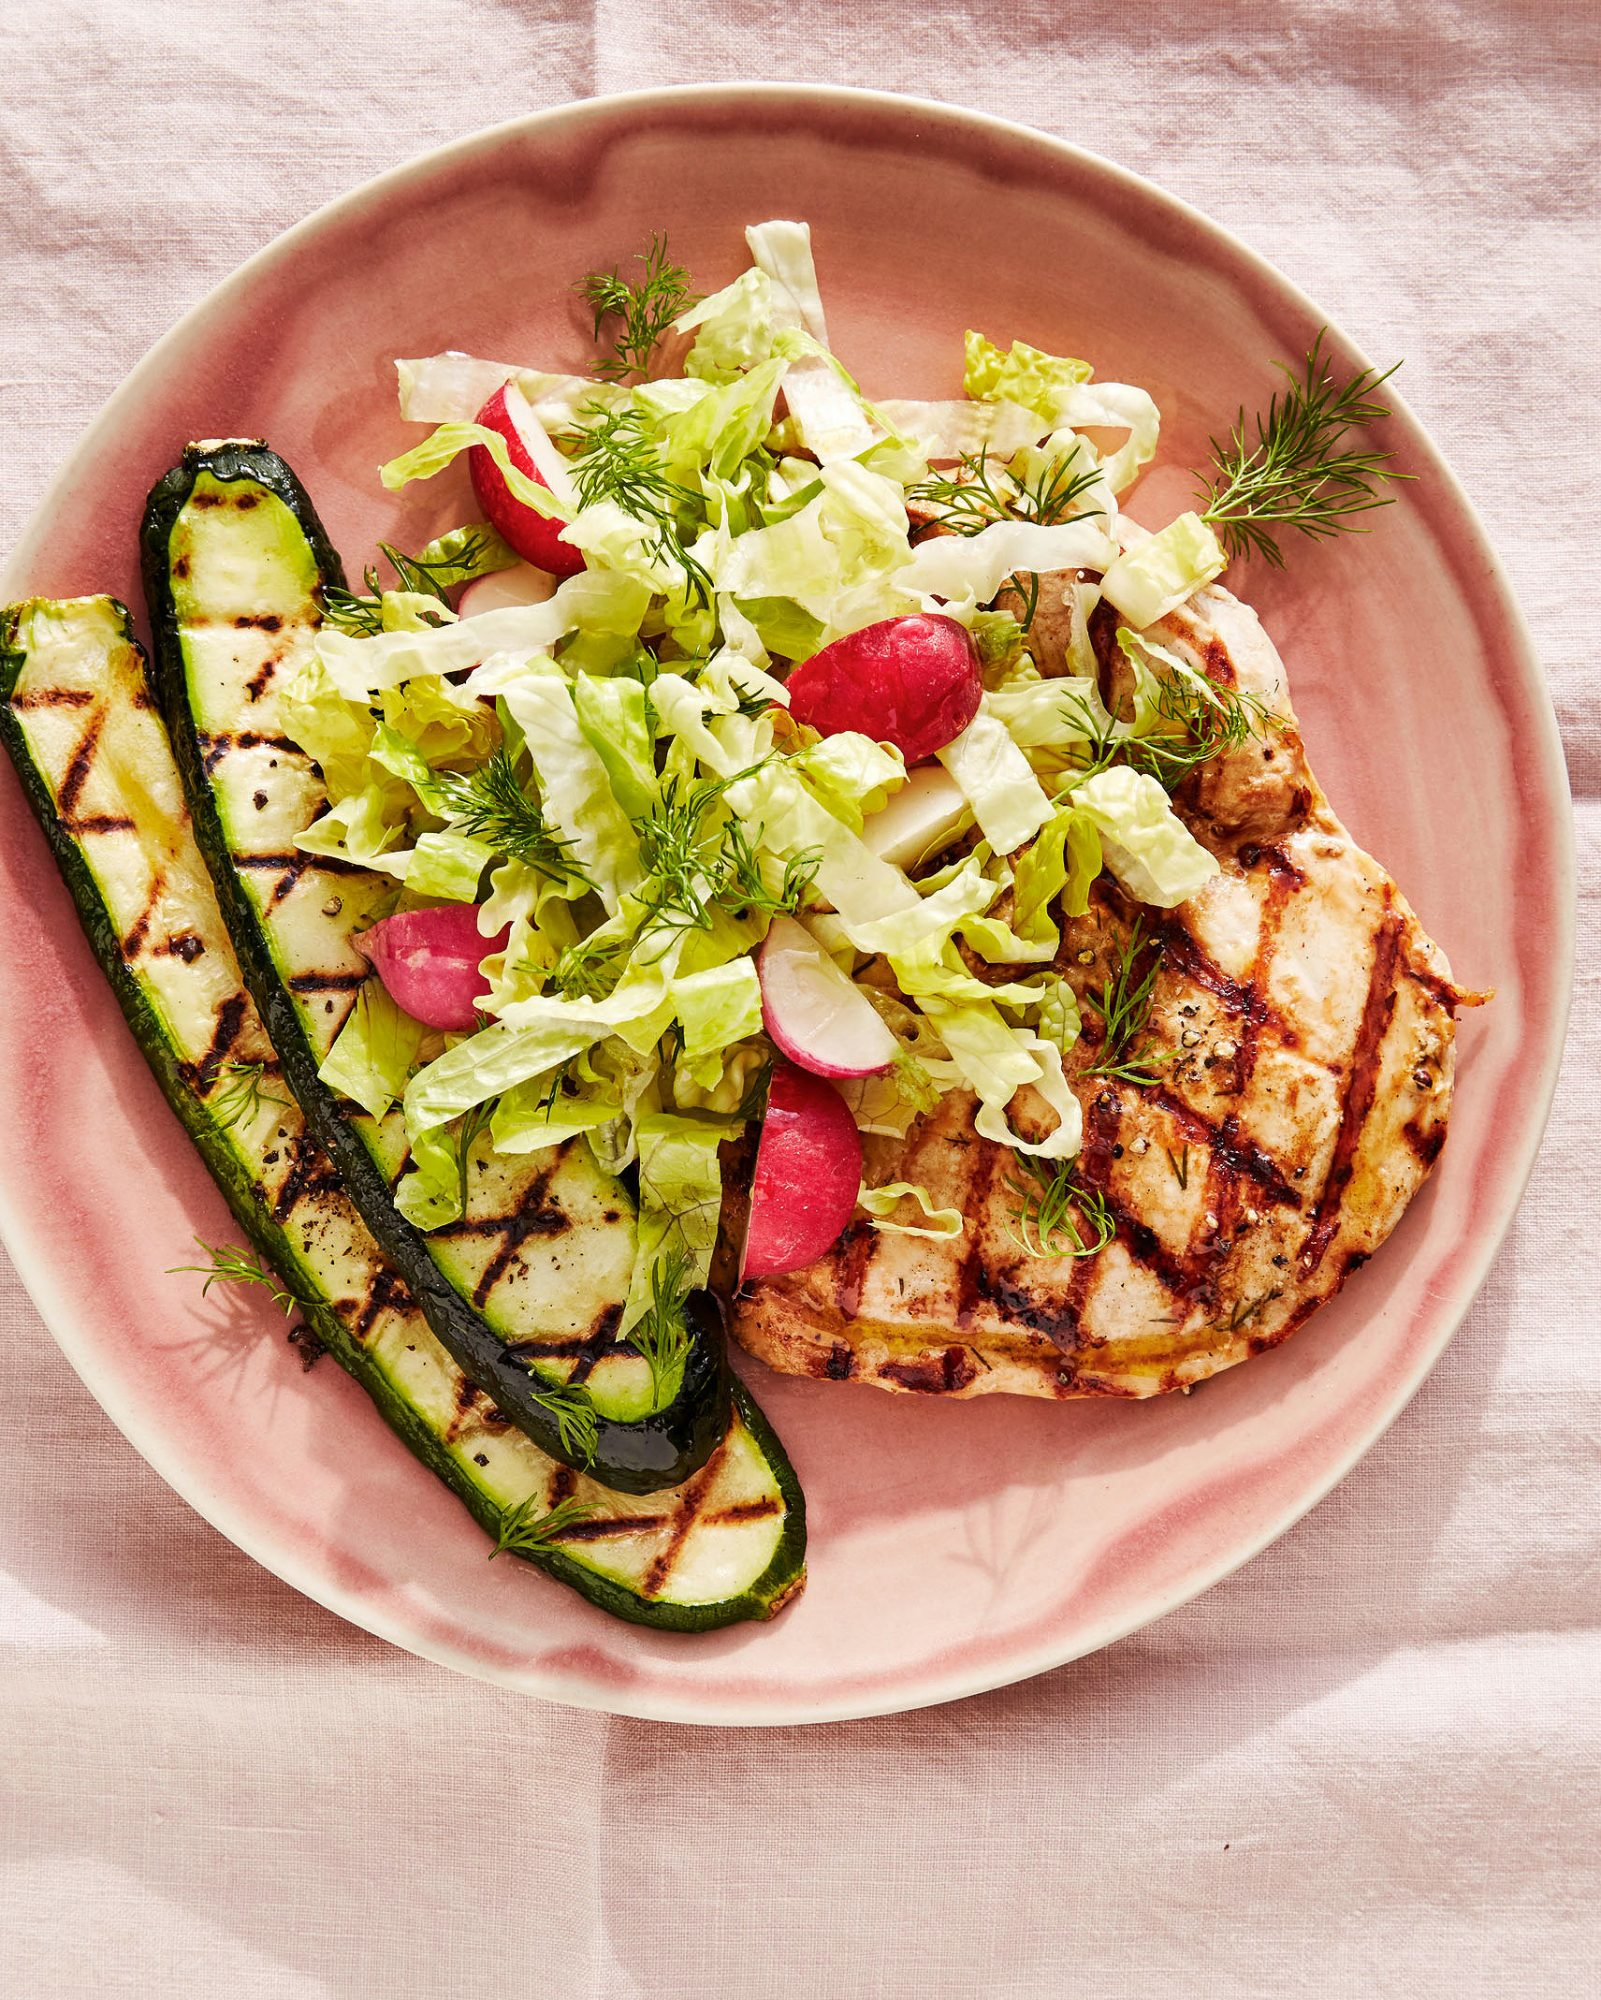 Grilled-Chicken-and-Zucchini Salad